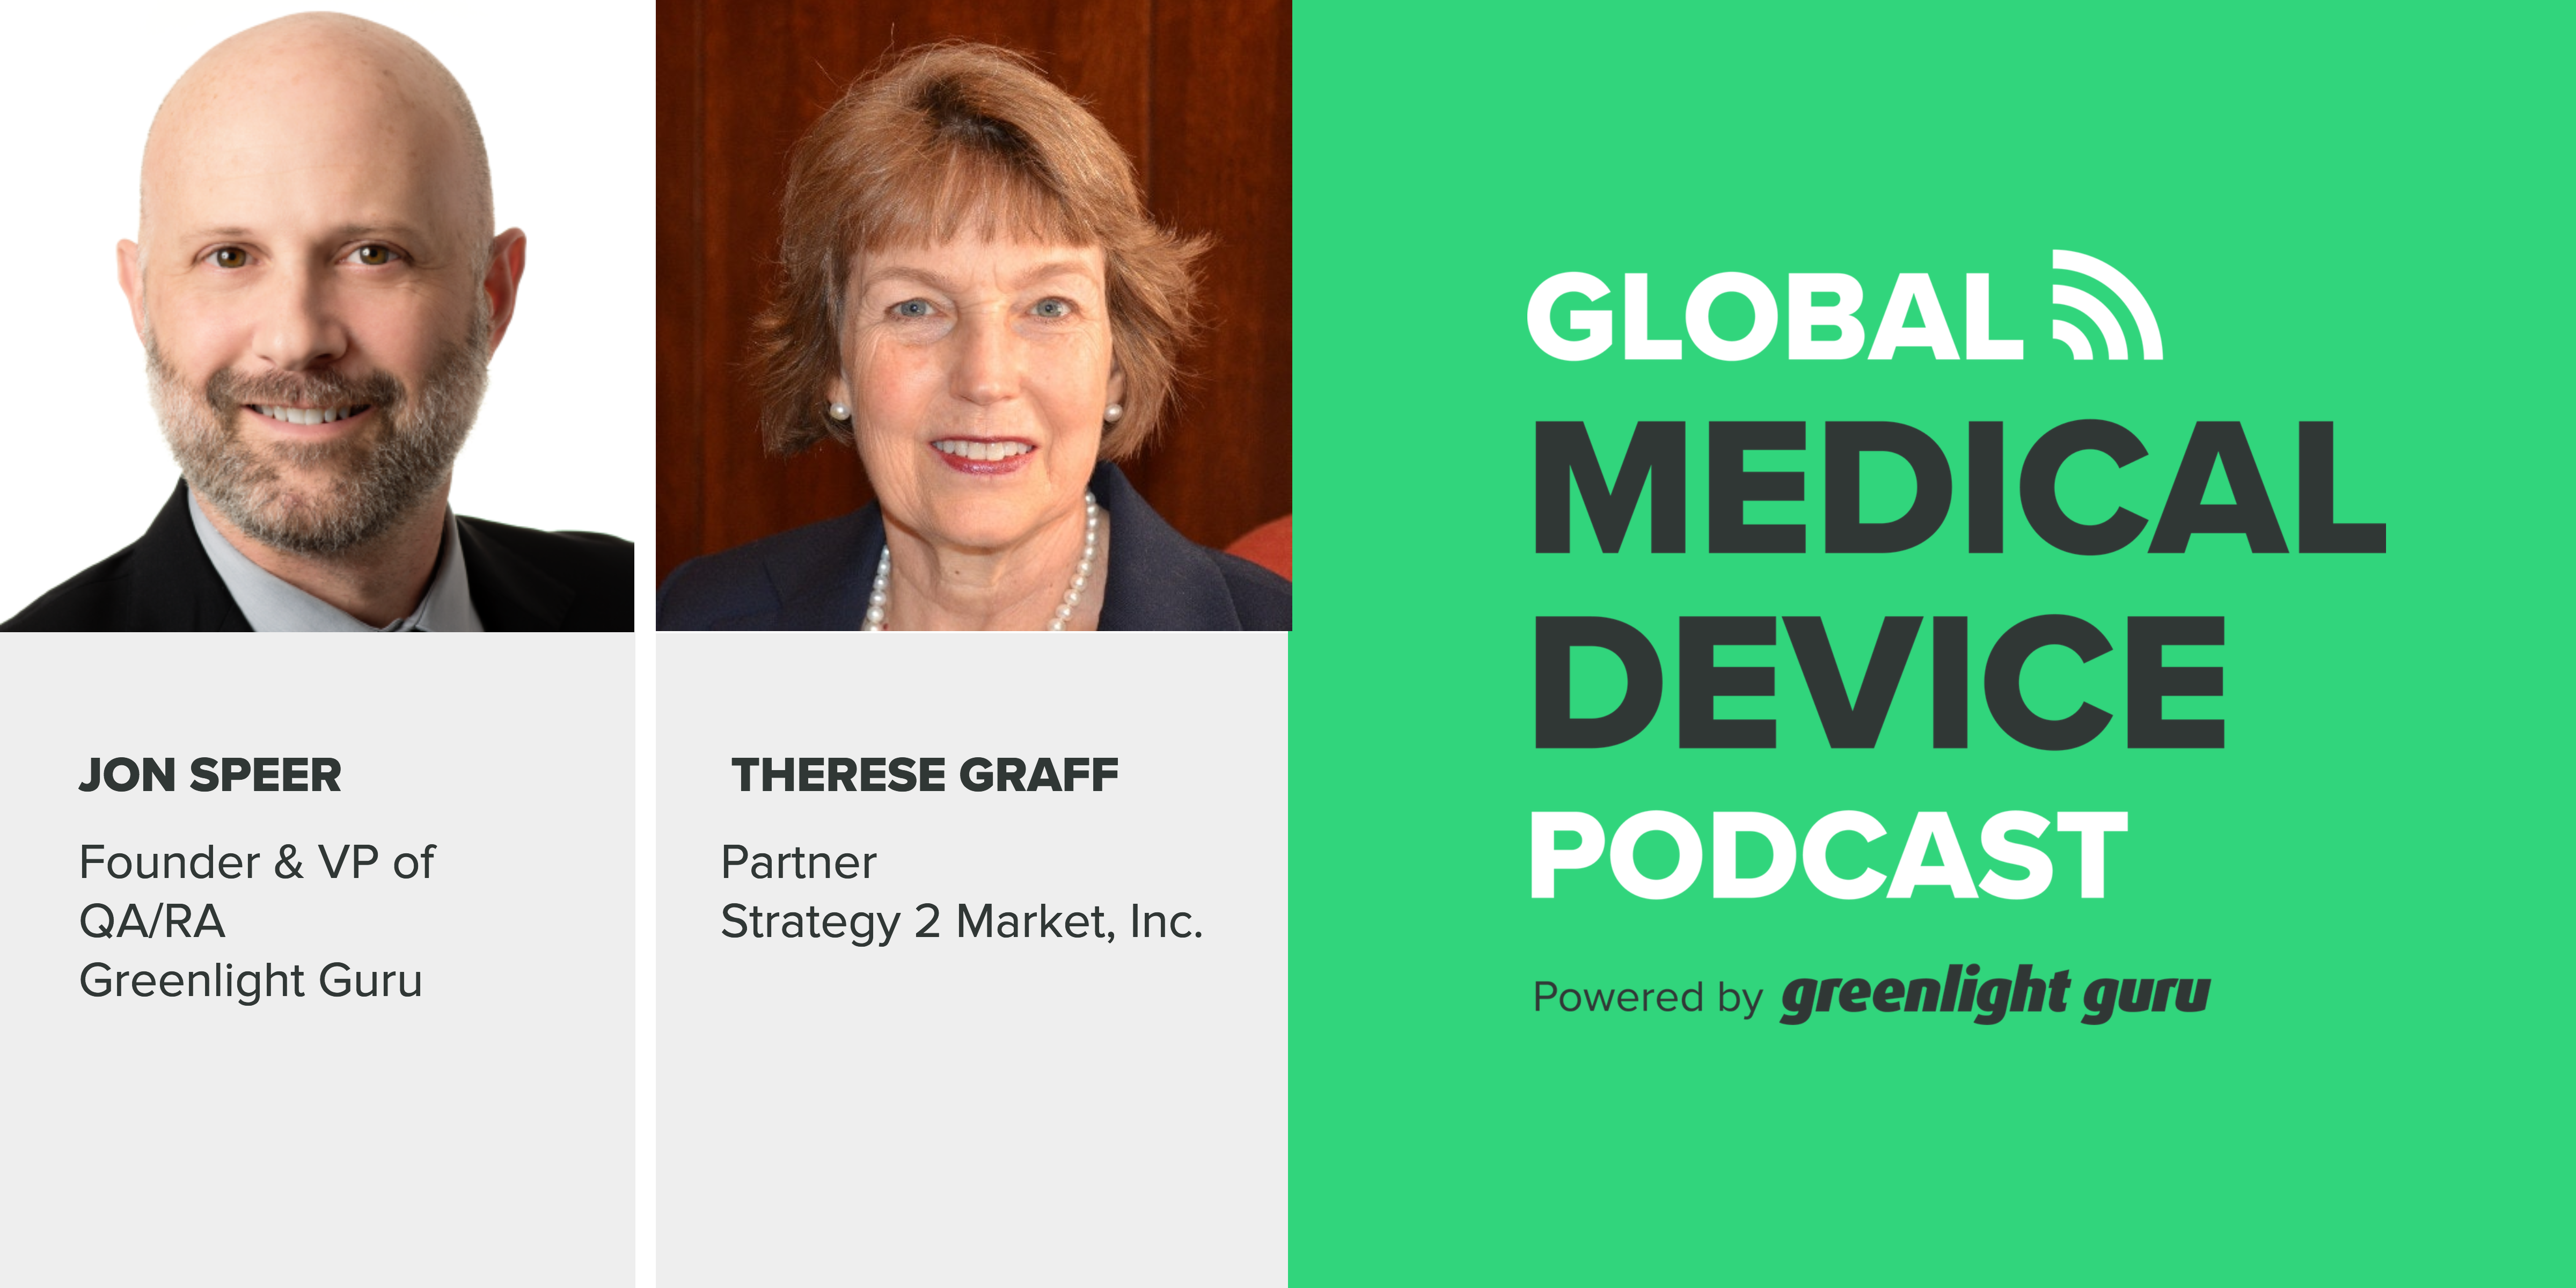 podcast_therese graff